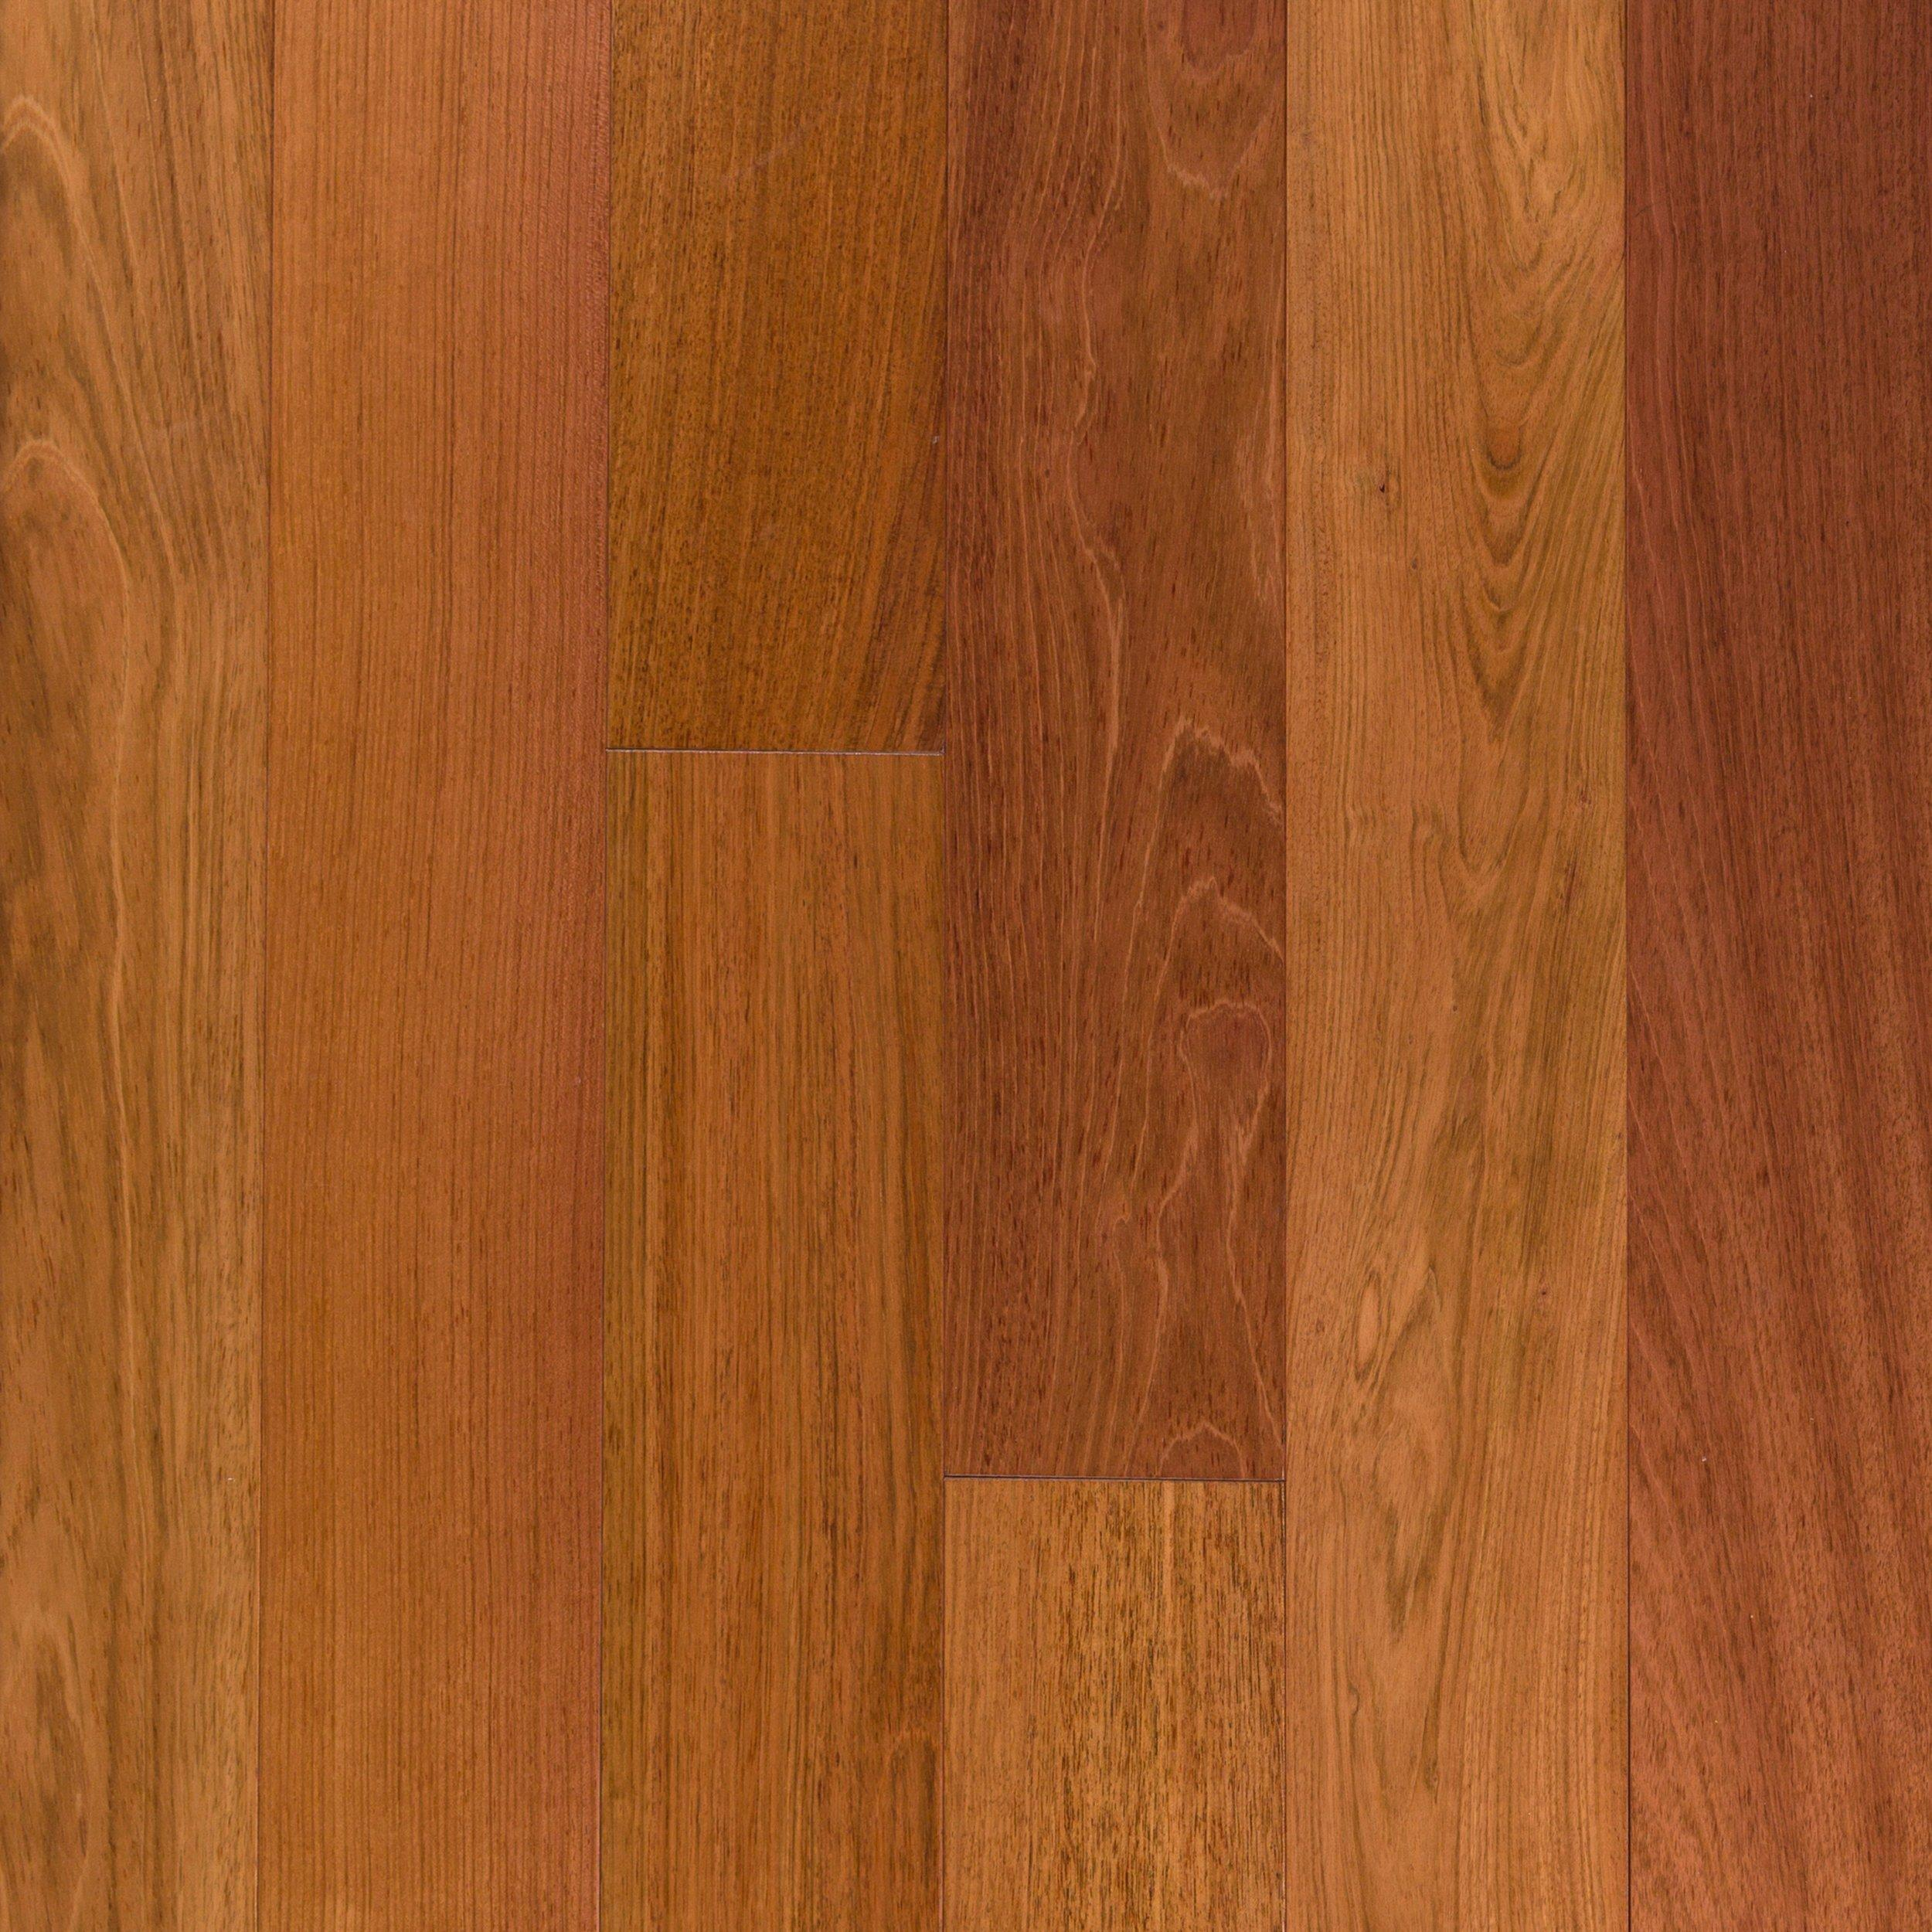 Natural Brazilian Cherry Smooth Solid Hardwood   3/4in. X 5 1/2in.    100301563 | Floor And Decor